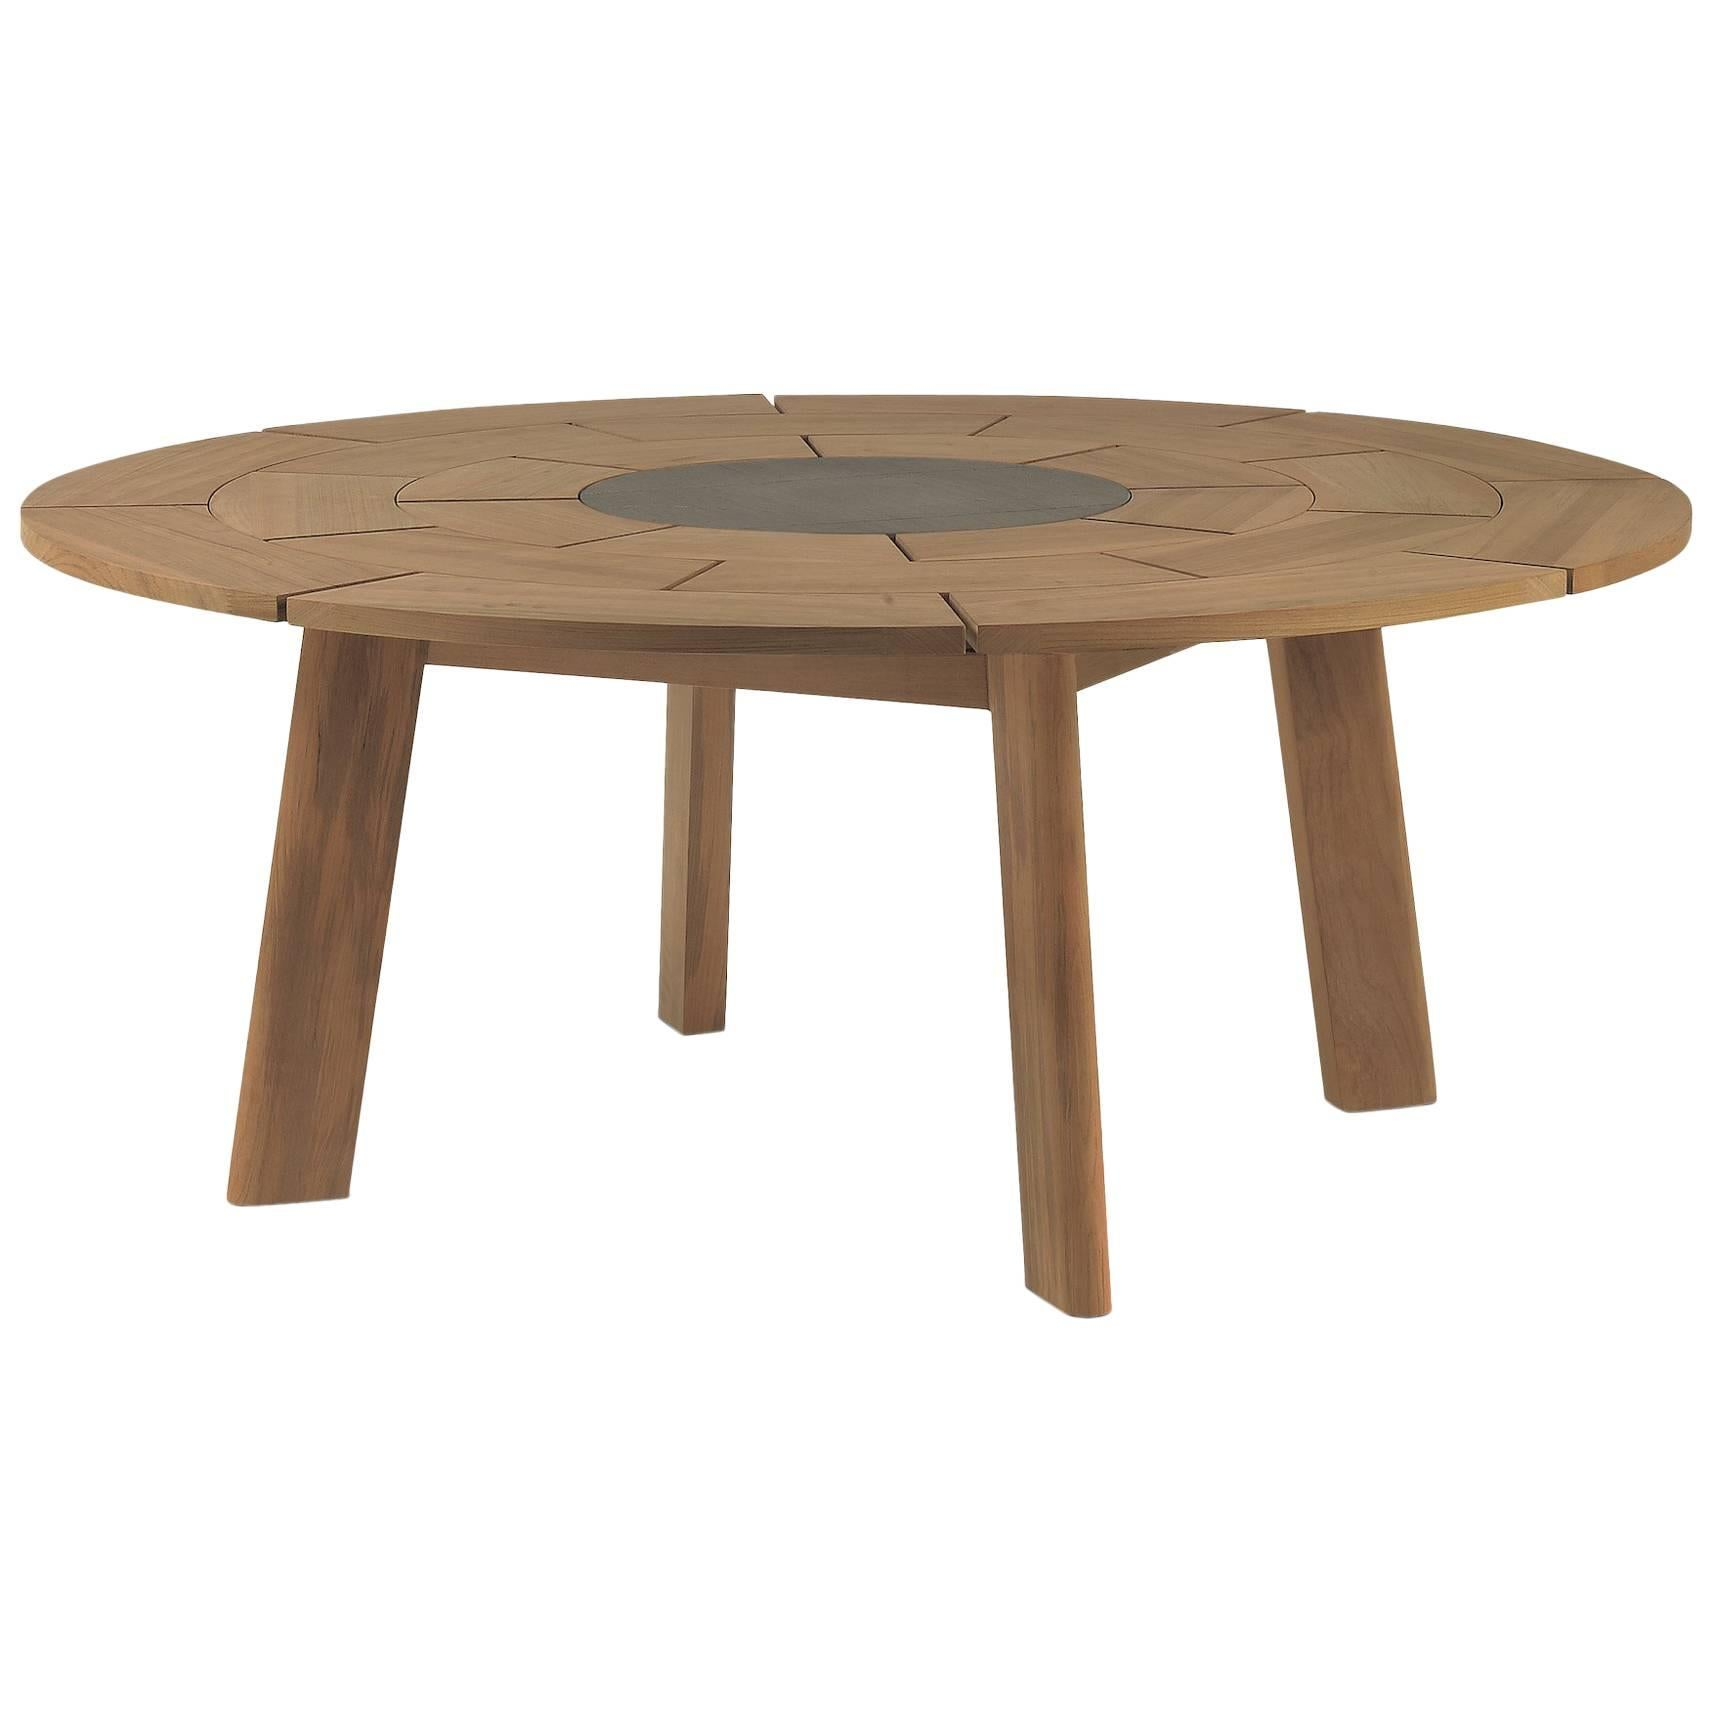 Roda Brick Round Outdoor Dining Table For Eight People With Stone Centre For  Sale